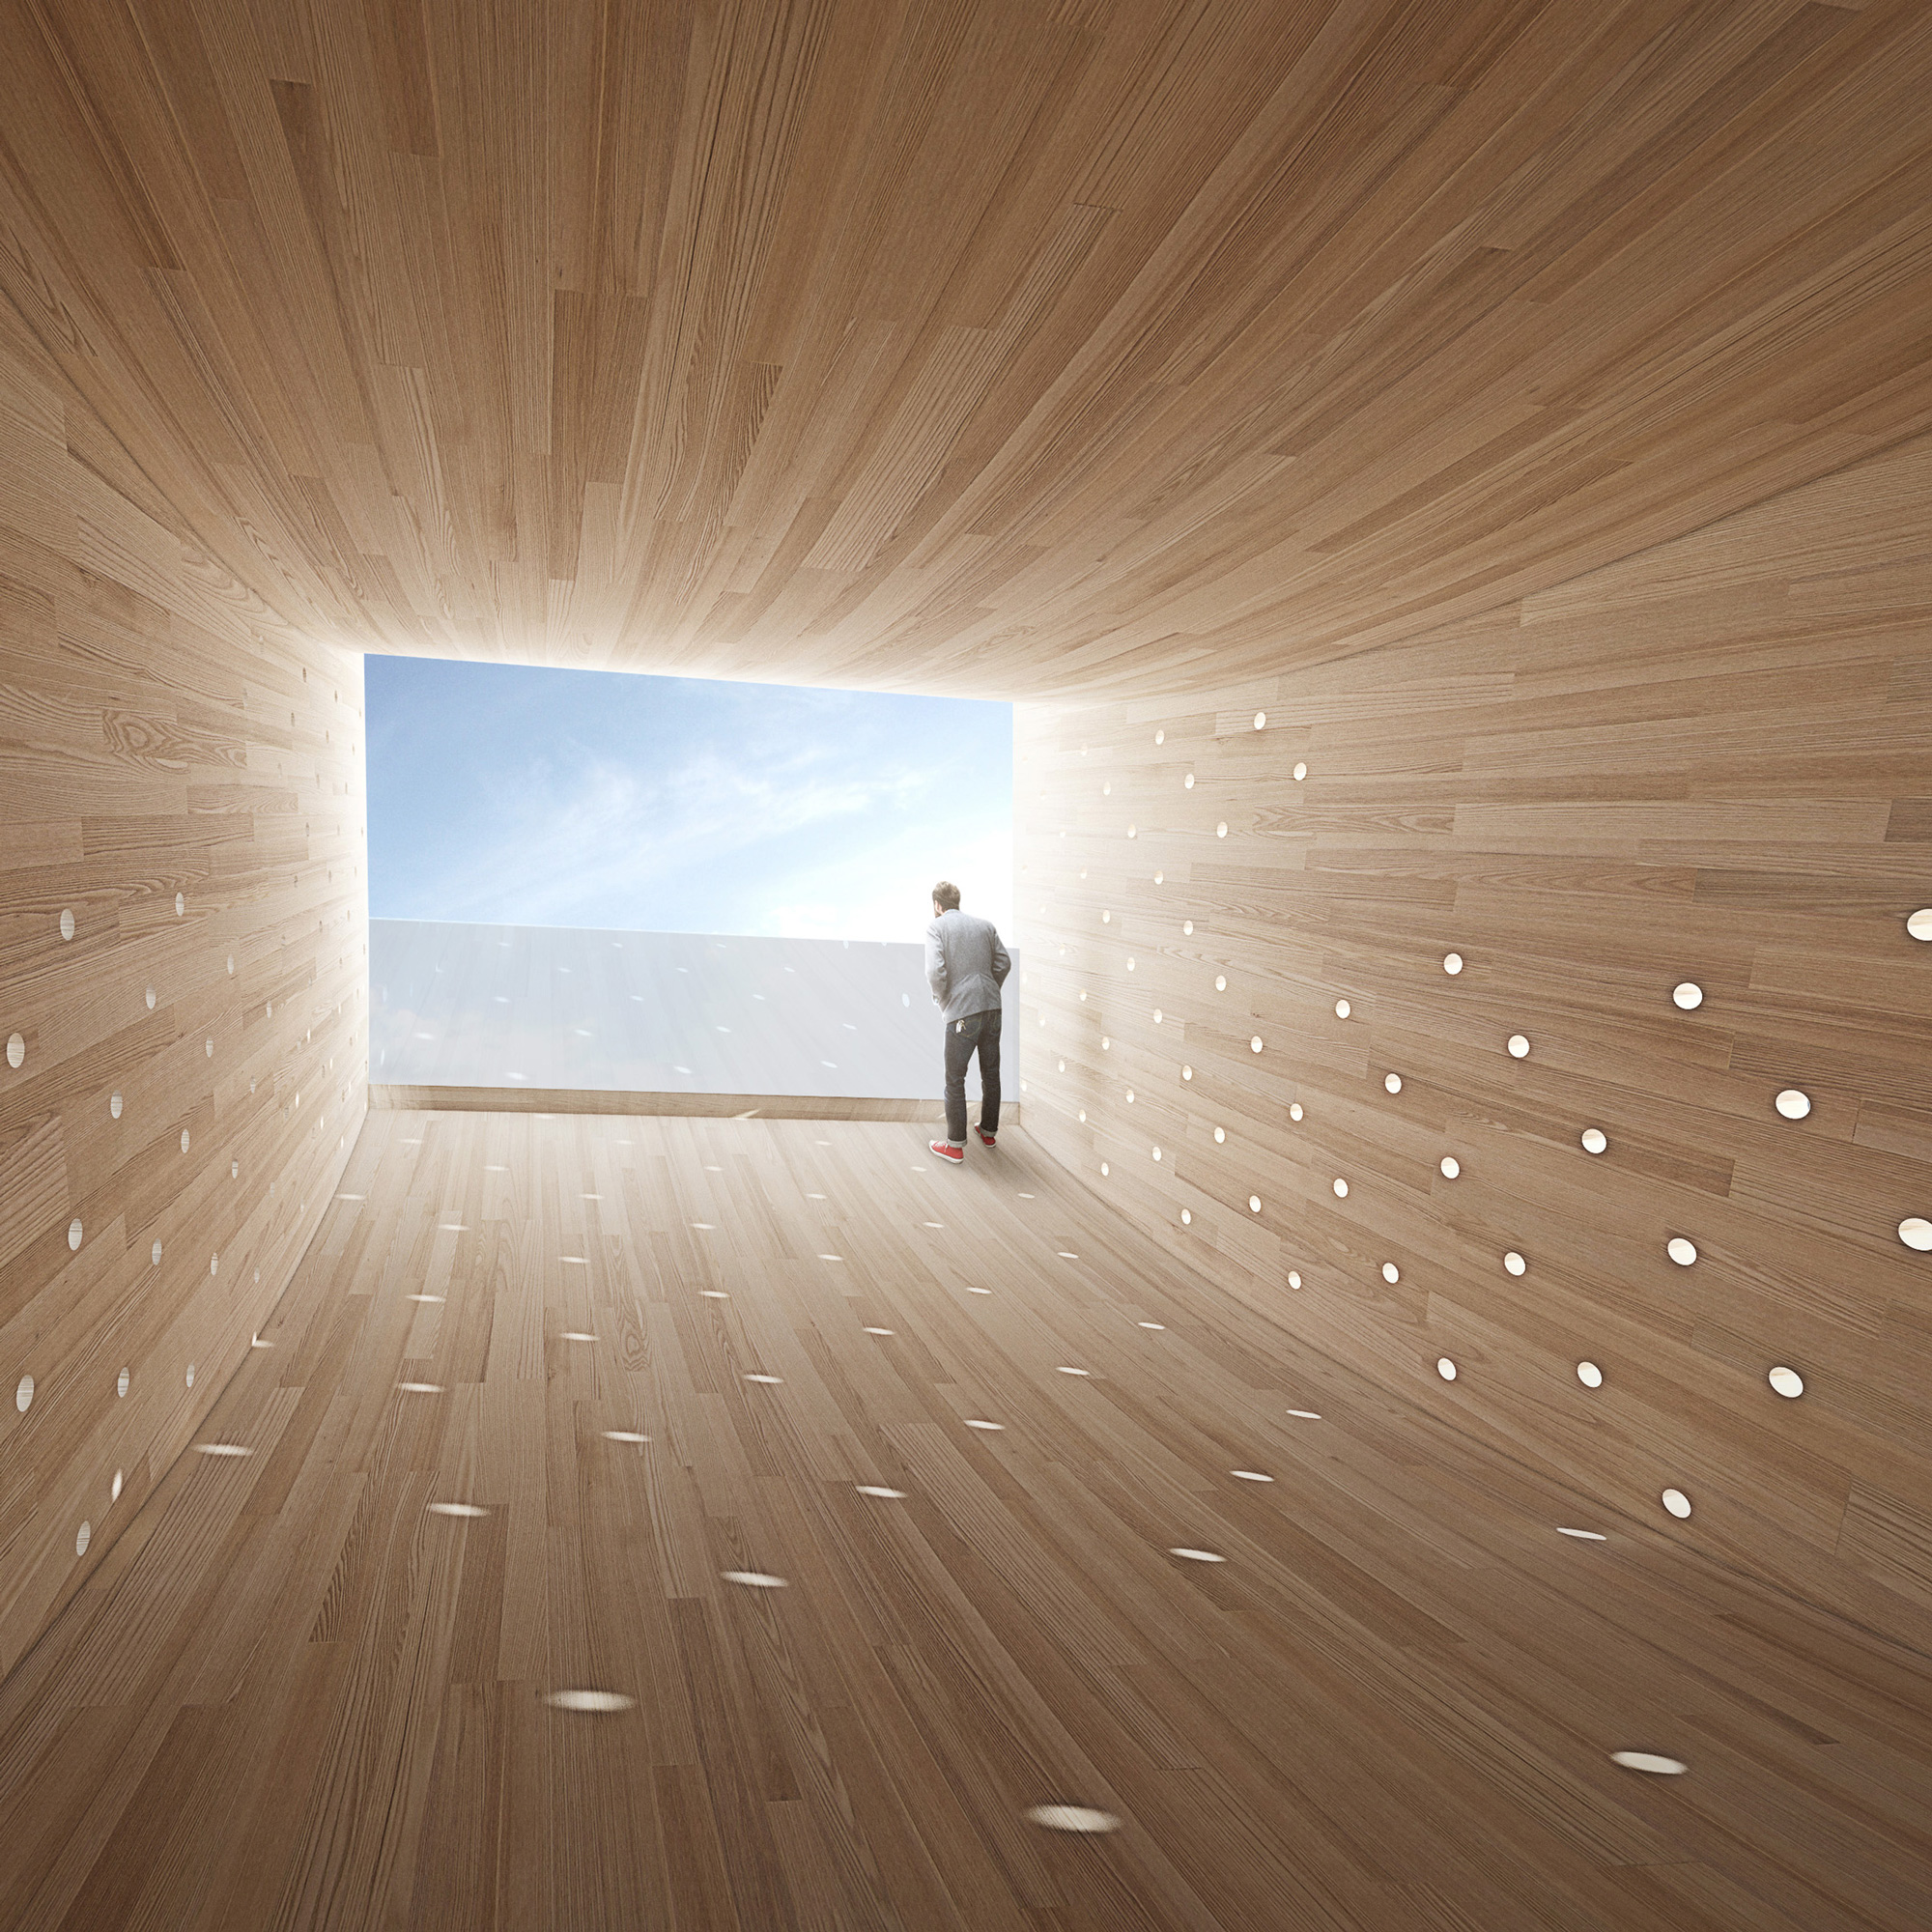 The Smile by Alison Brooks Architects for the London Design Festival © Alison Brooks Architects